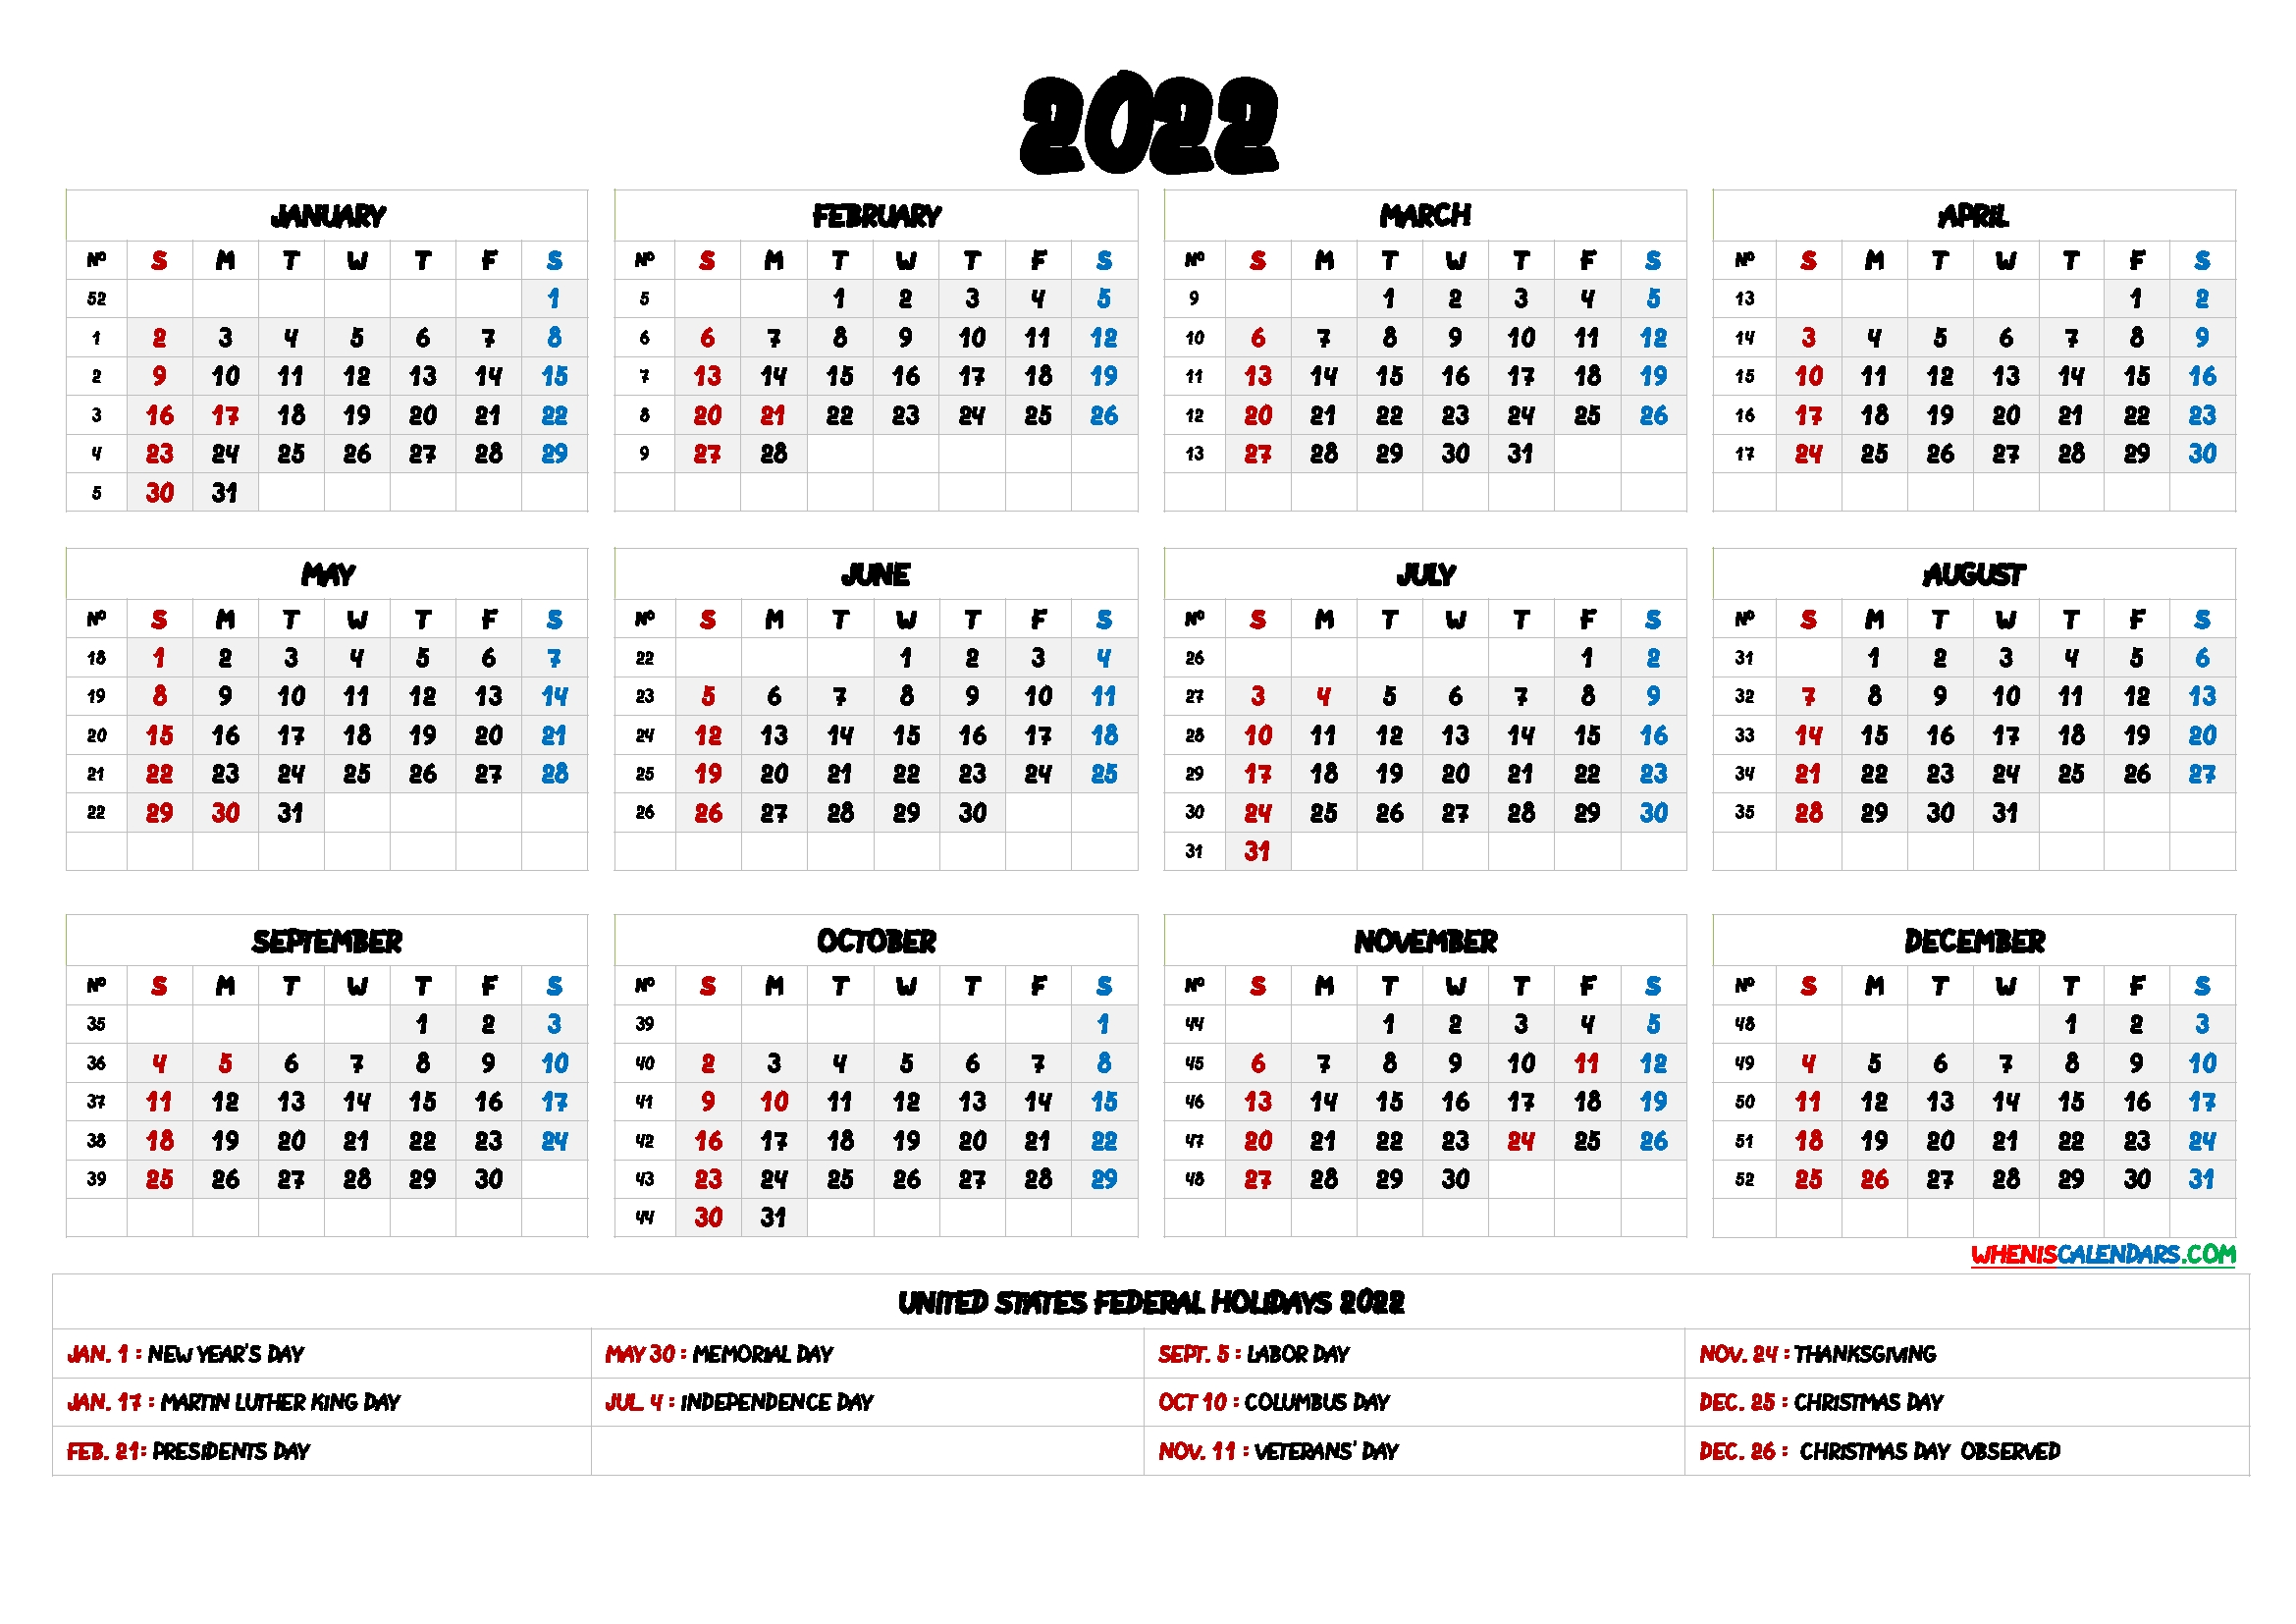 Free Printable 2022 Yearly Calendar With Holidays - 9 Templates inside 2021 2022 Calendar Printable One Page